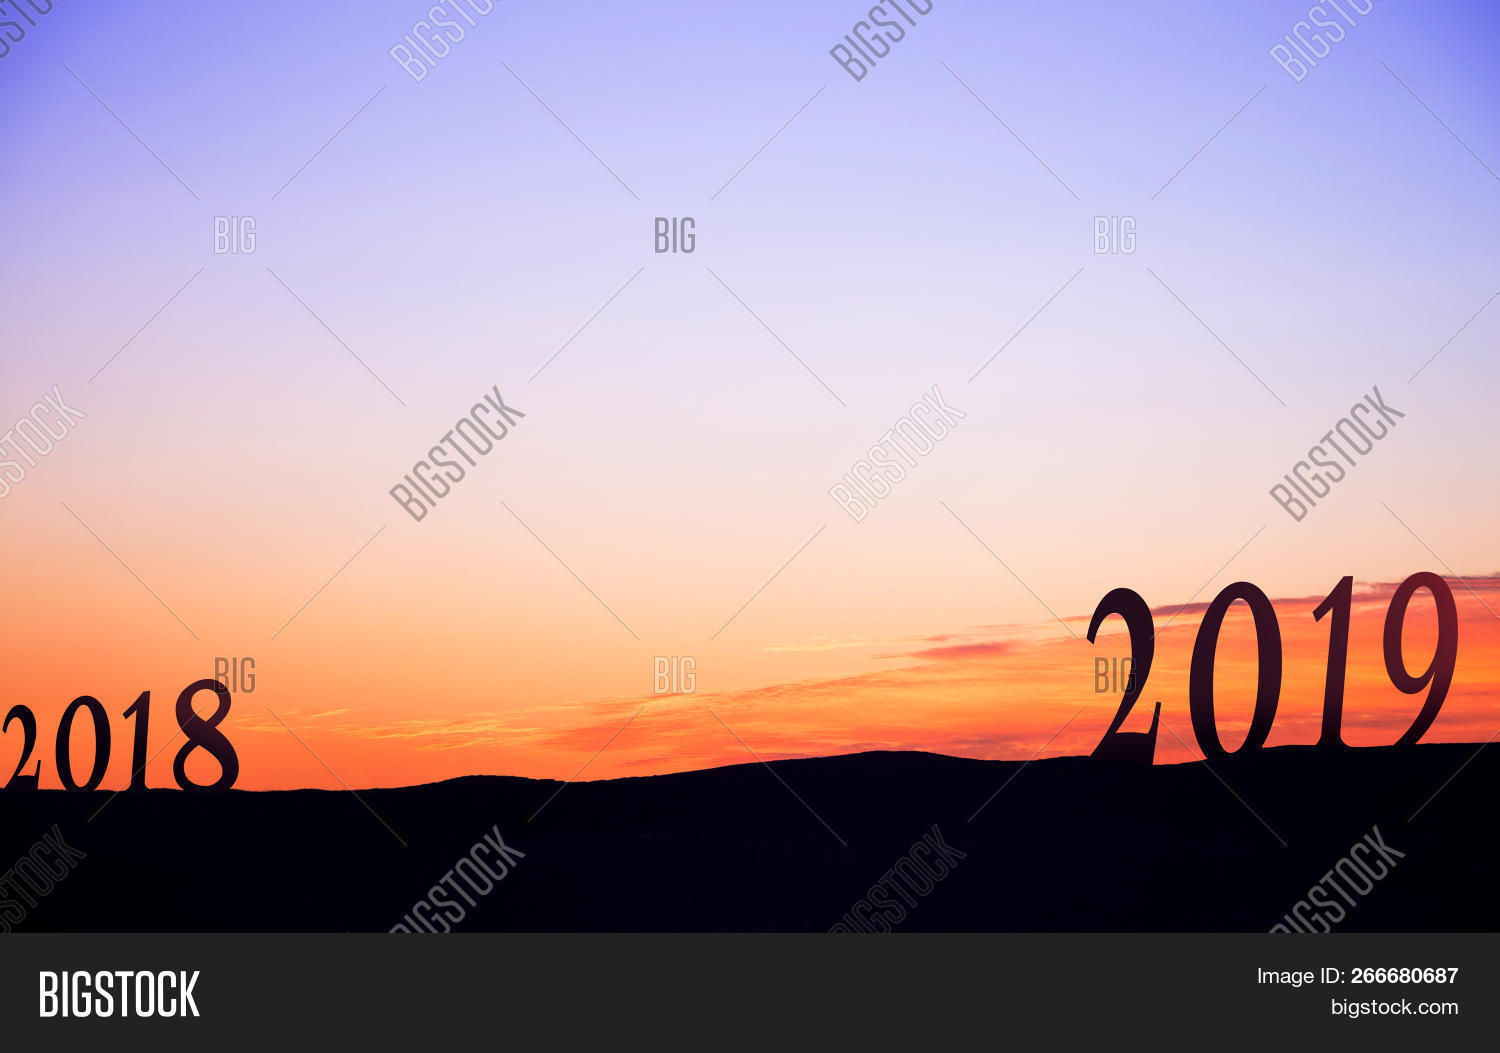 2018,2019,annual,backdrop,background,beginnings,blue,business,calendar,card,change,clouds,concept,copy-space,dark,dawn,event,goals,golden,gradient,happy,hike,holidays,january,landscape,leaving,light,morning,mountains,nature,new,numbers,orange,outdoors,peaceful,scenic,season,seasonal,silhouettes,sky,start,success,sunrise,sunset,text,time,travel,xmas,year